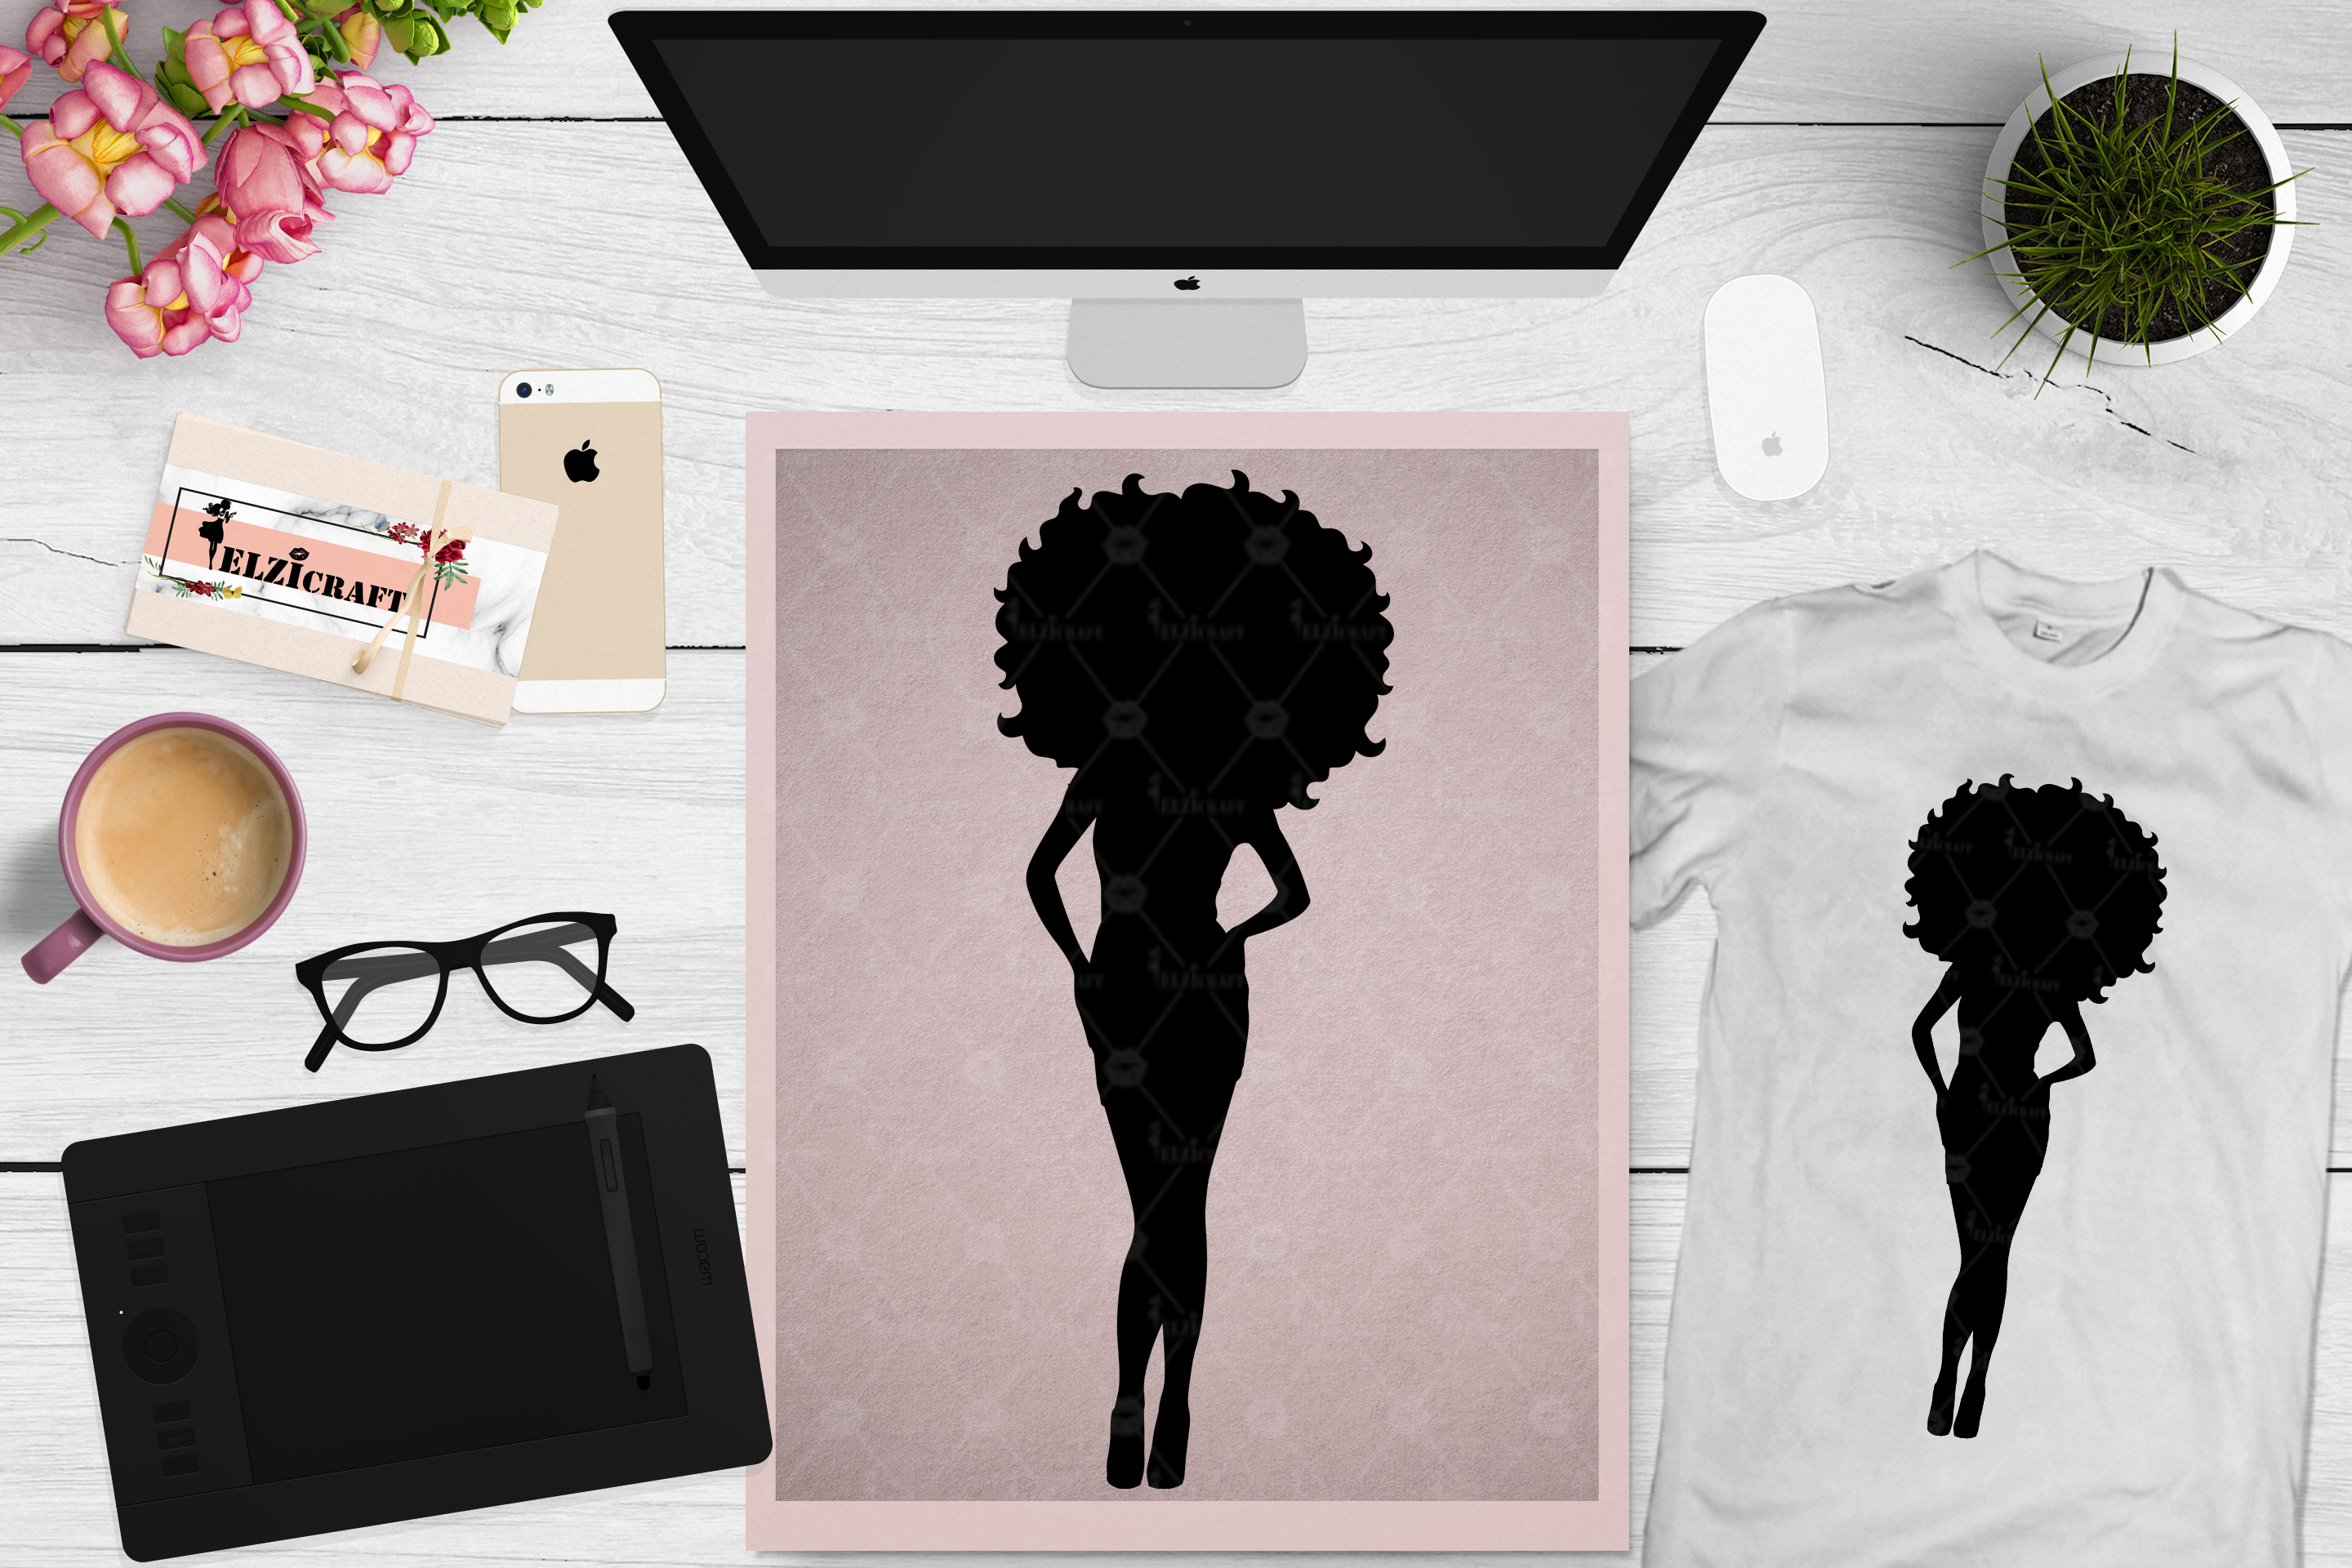 Download Free Sexy Afro Woman Silhouette Graphic By Elzicraft Creative Fabrica for Cricut Explore, Silhouette and other cutting machines.